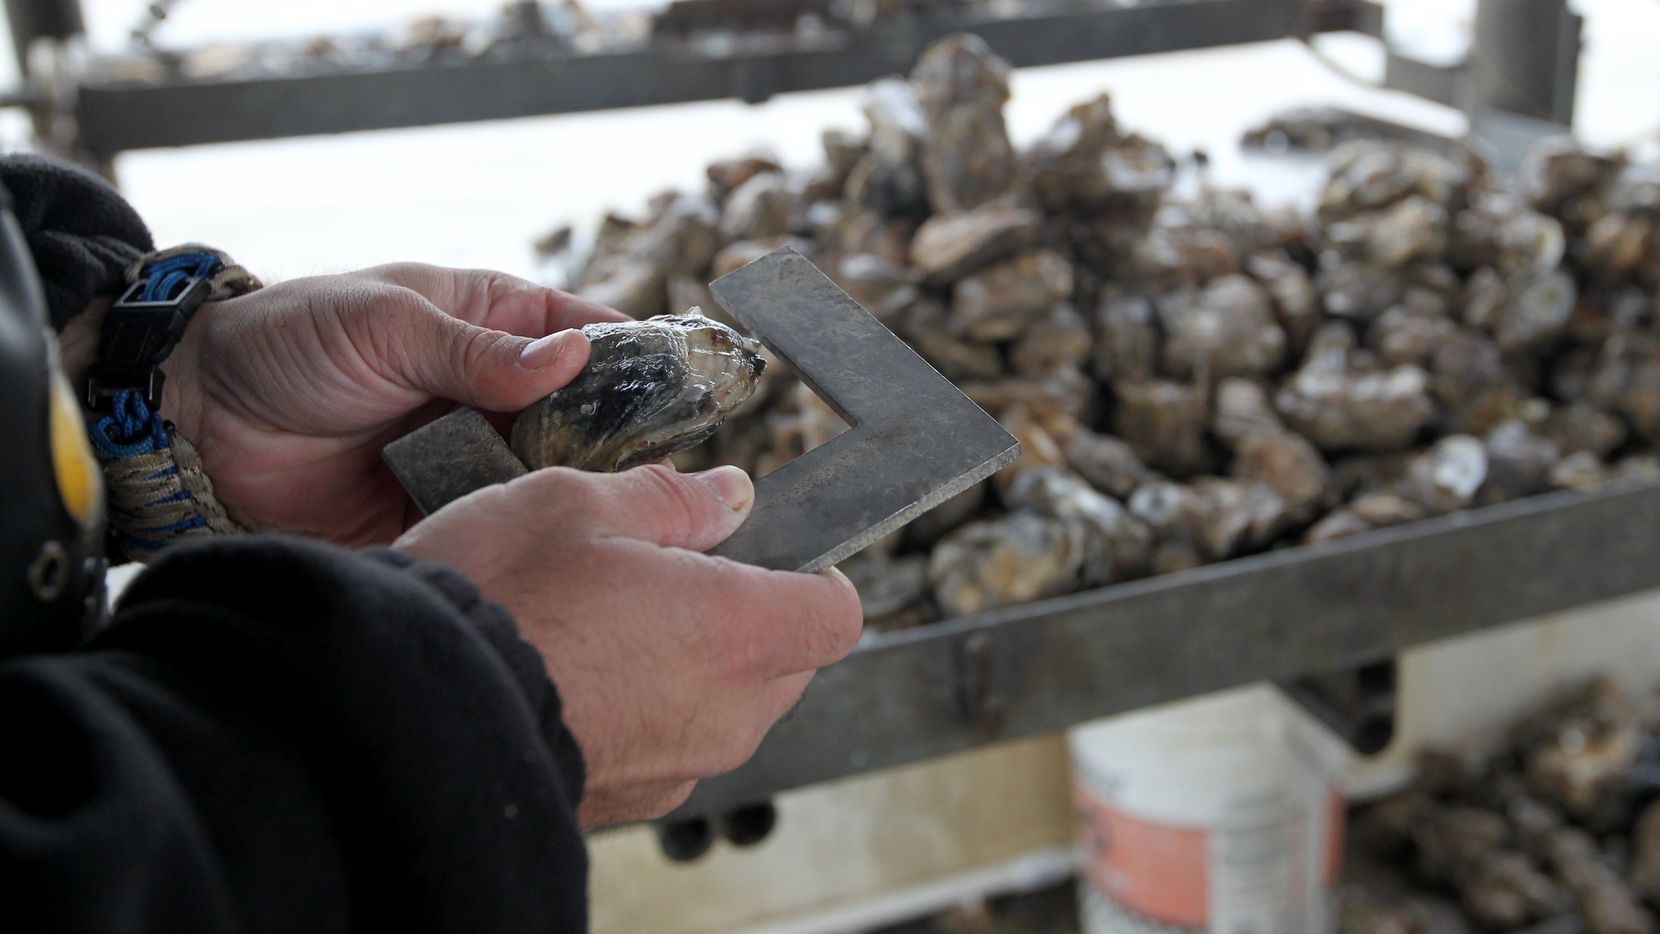 In this Dec. 2, 2014 photo, Texas Parks and Wildlife Game Warden Travis Fountain checks a sack of oysters aboard an oyster boat to make sure they are legal, in East Galveston Bay, Texas. State officials have recommended parts of Galveston Bay be closed to oyster harvesting amid concerns over immature mollusks being removed and reefs still recovering from 2008's Hurricane Ike. (AP Photo/The Galveston County Daily News, Jennifer Reynolds)